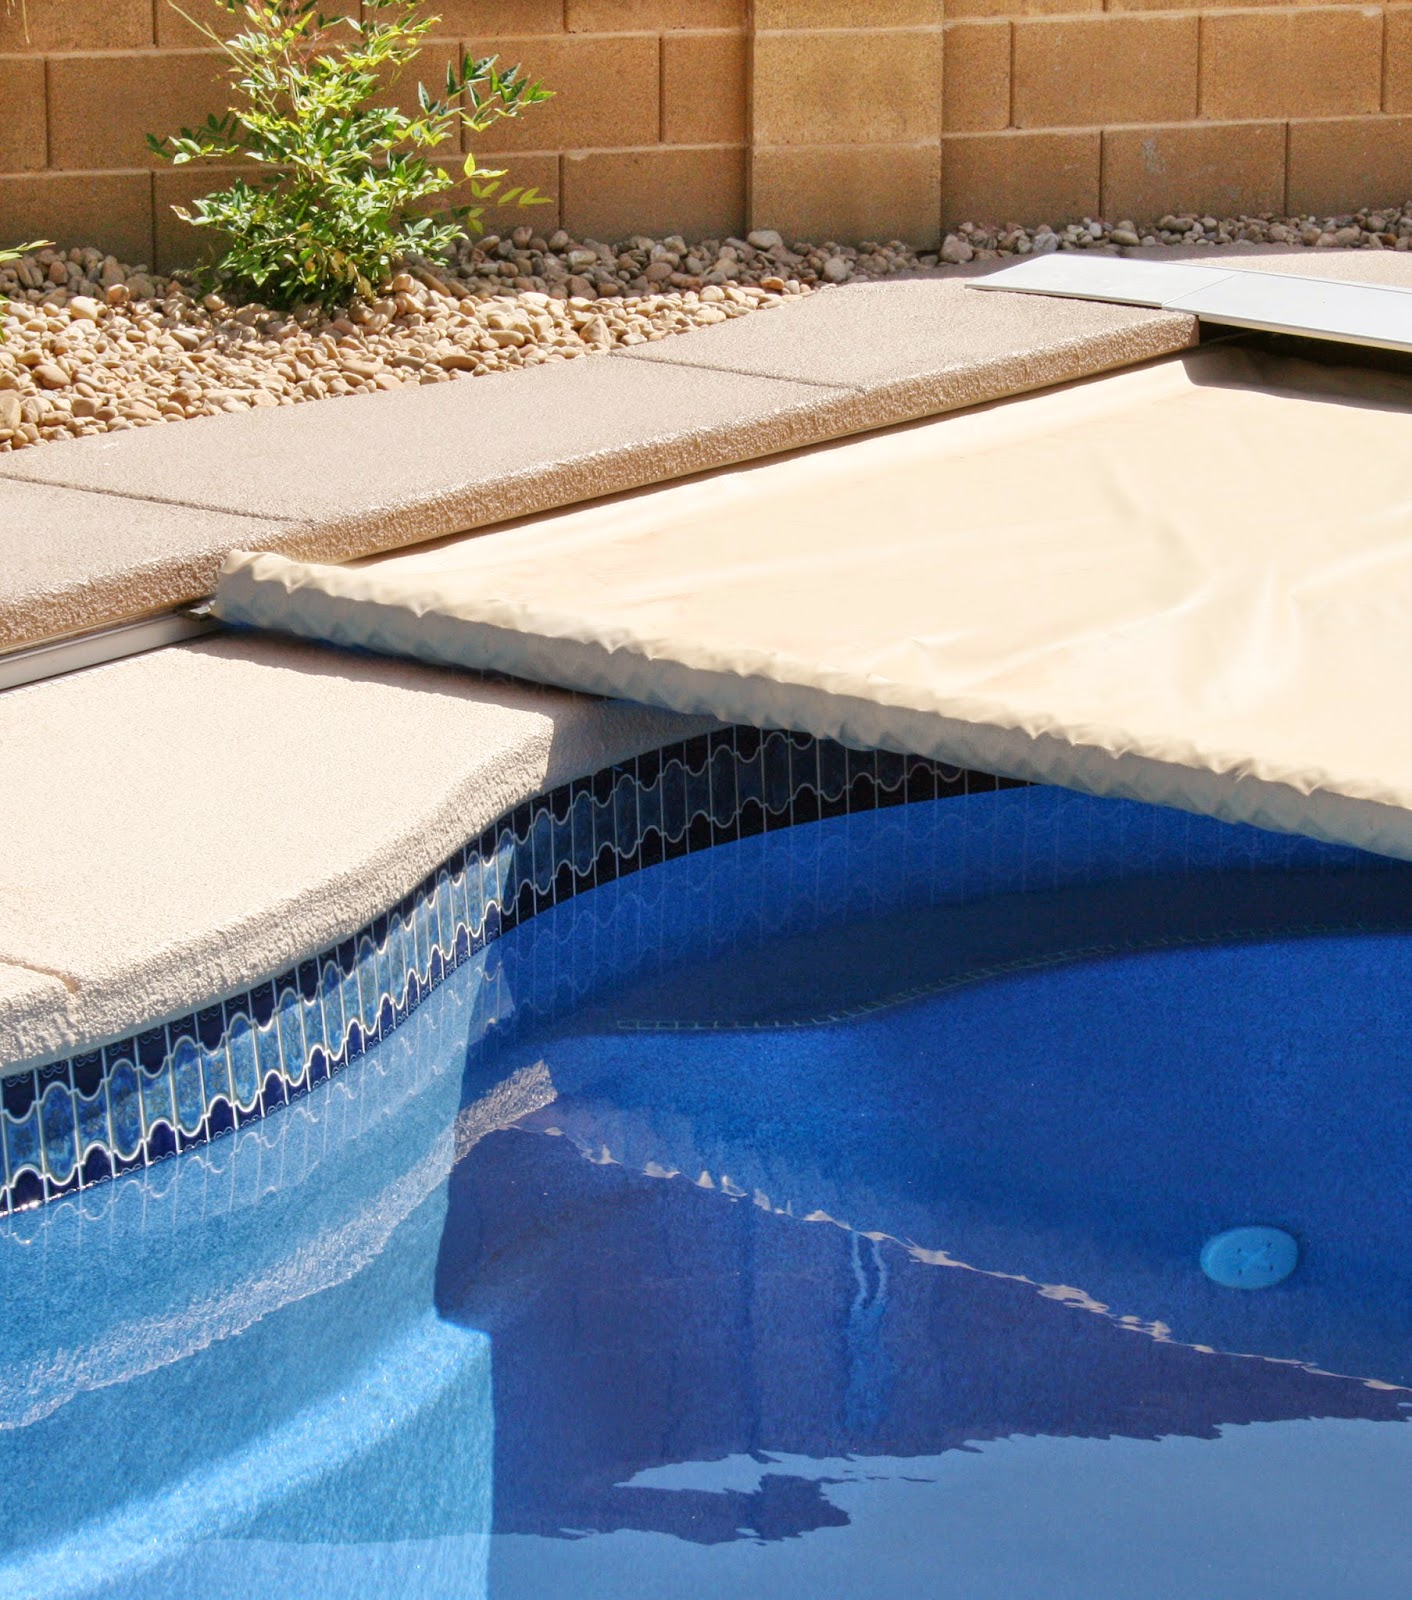 Coverstar Safety Swimming Pool Covers For Automatic And Solid Mesh Coverstar Featured